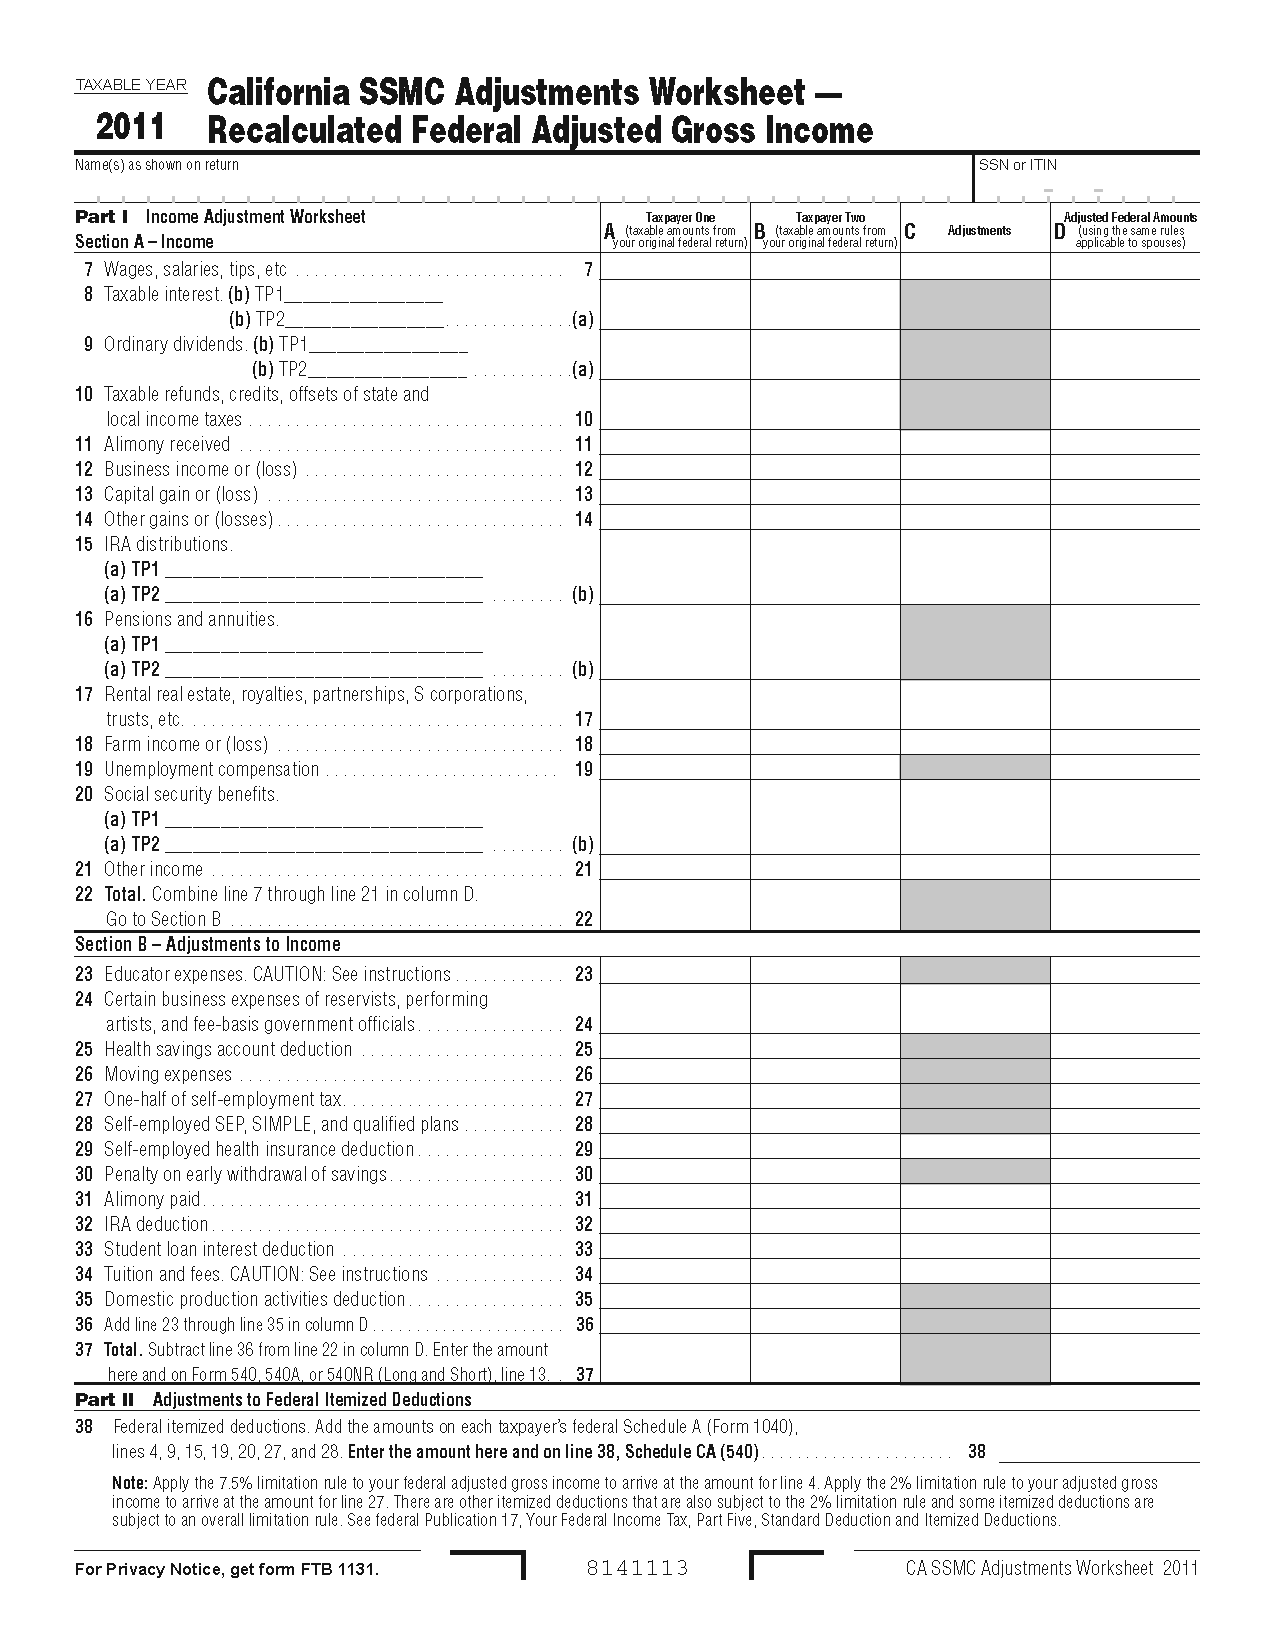 Worksheets Worksheet-b-california 776 worksheet form california same sex married couples adjustments view all 2011 ca tax forms